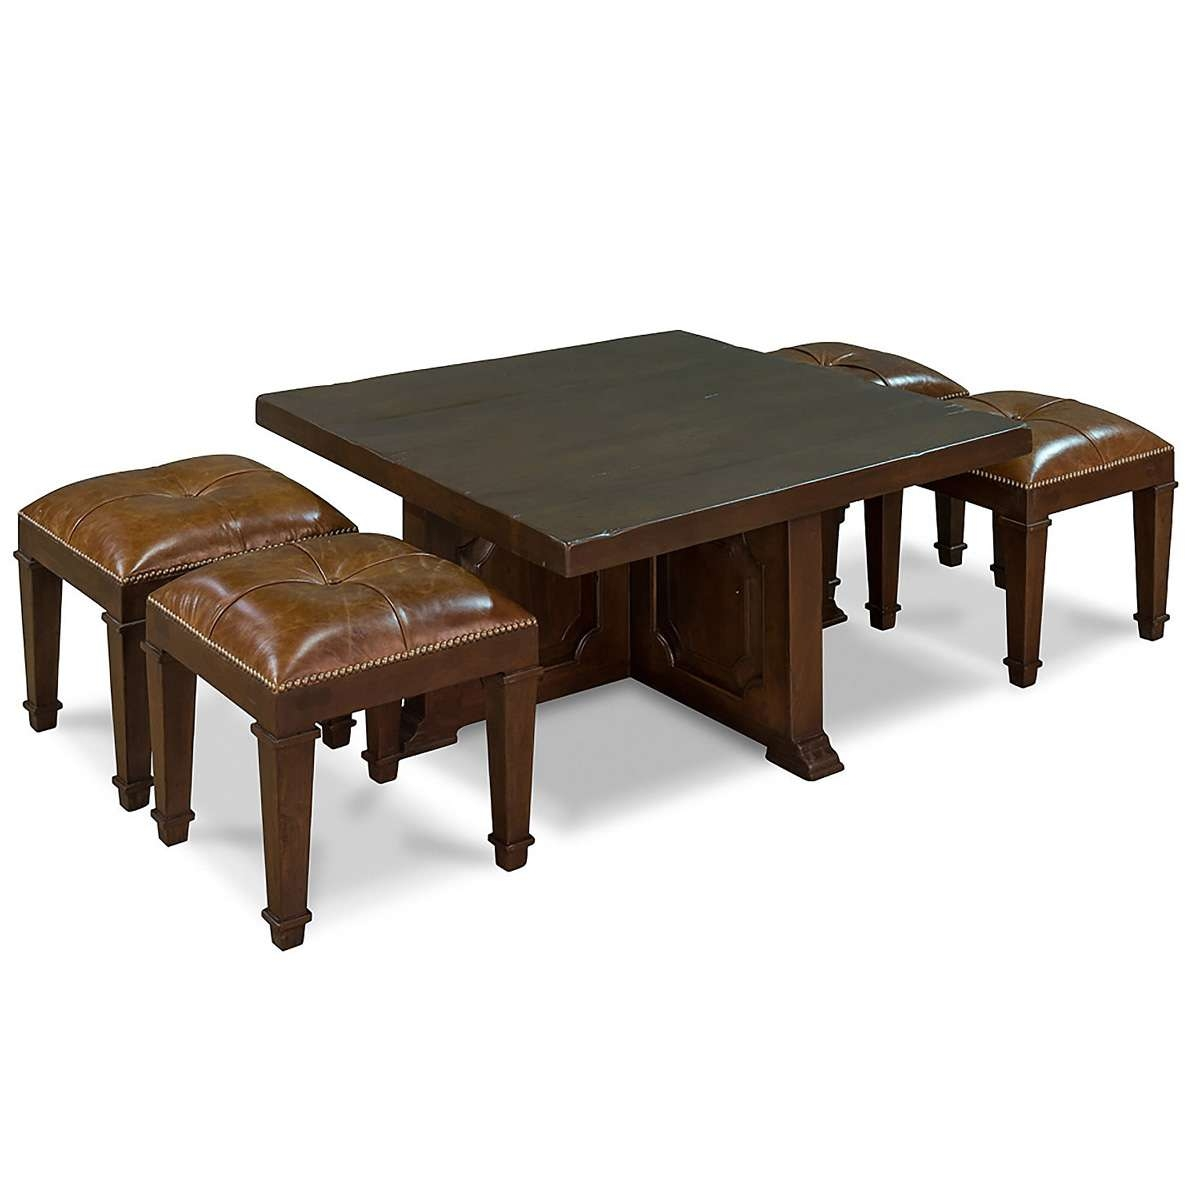 Newest Coffee Tables With Nesting Stools Regarding Coffee Table With 4 Nesting Stools – So That's Cool (View 15 of 20)